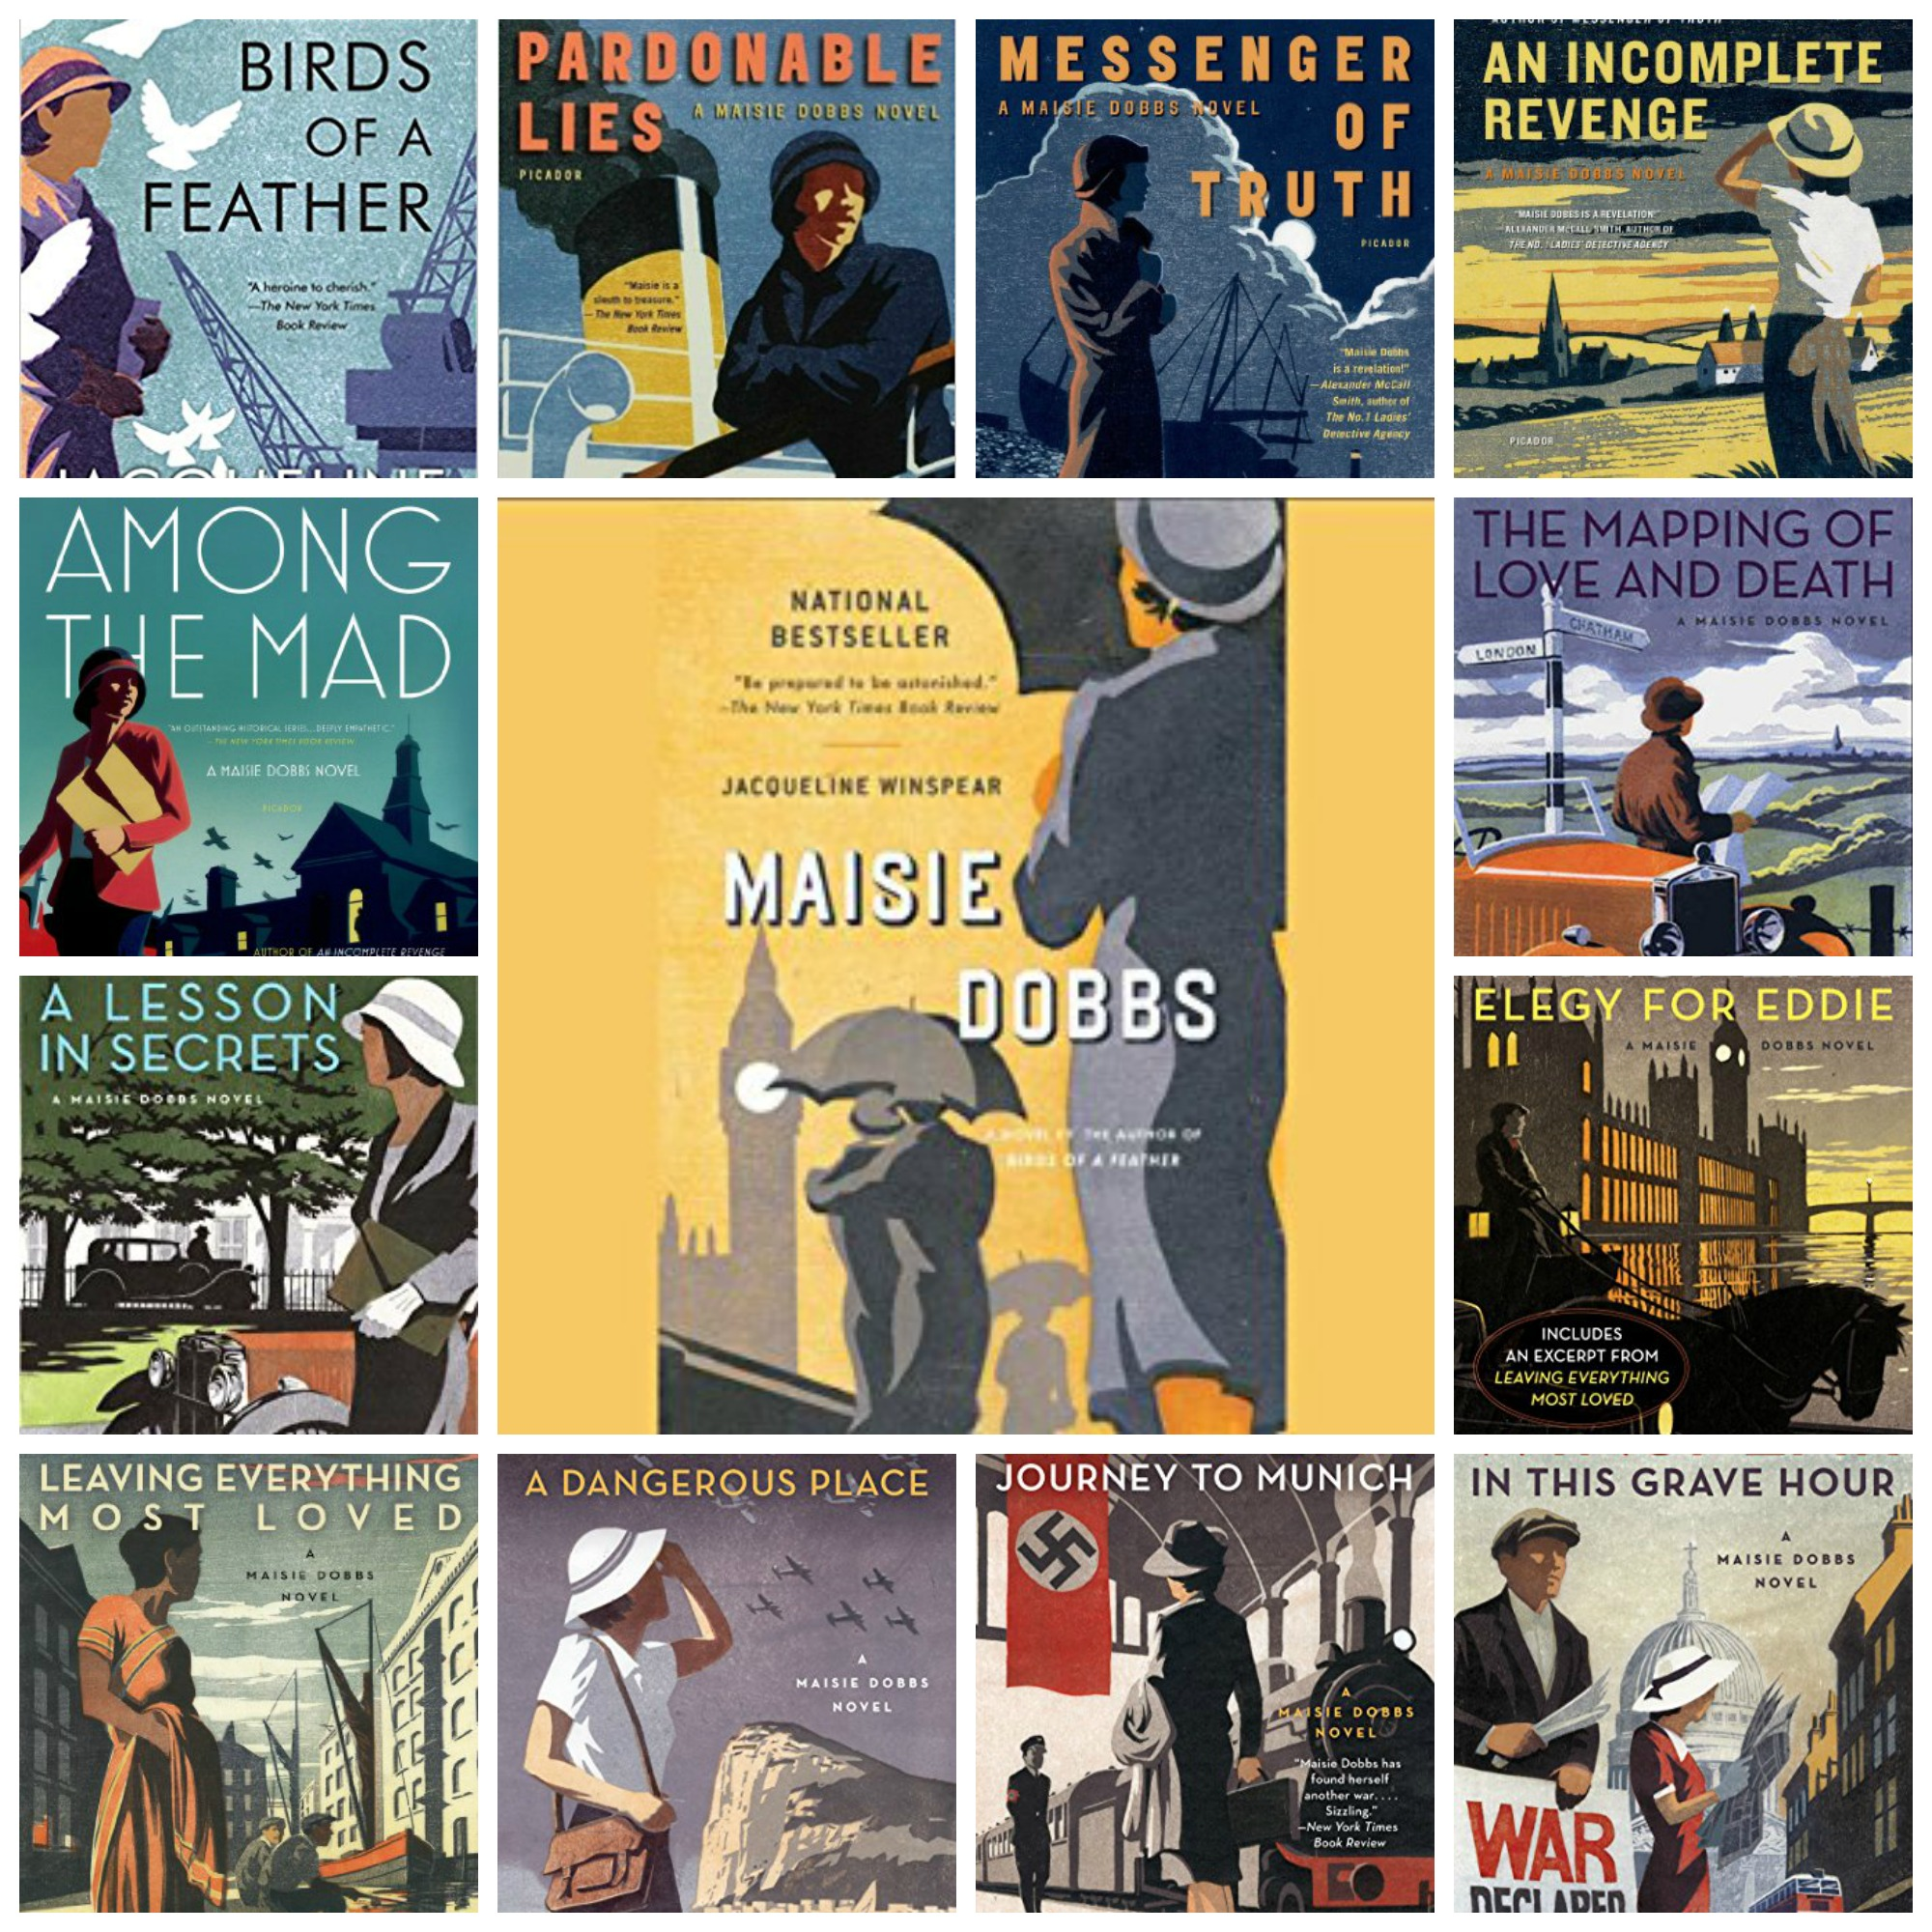 covers for Maisie Dobbs series by Jacqueline Winspear